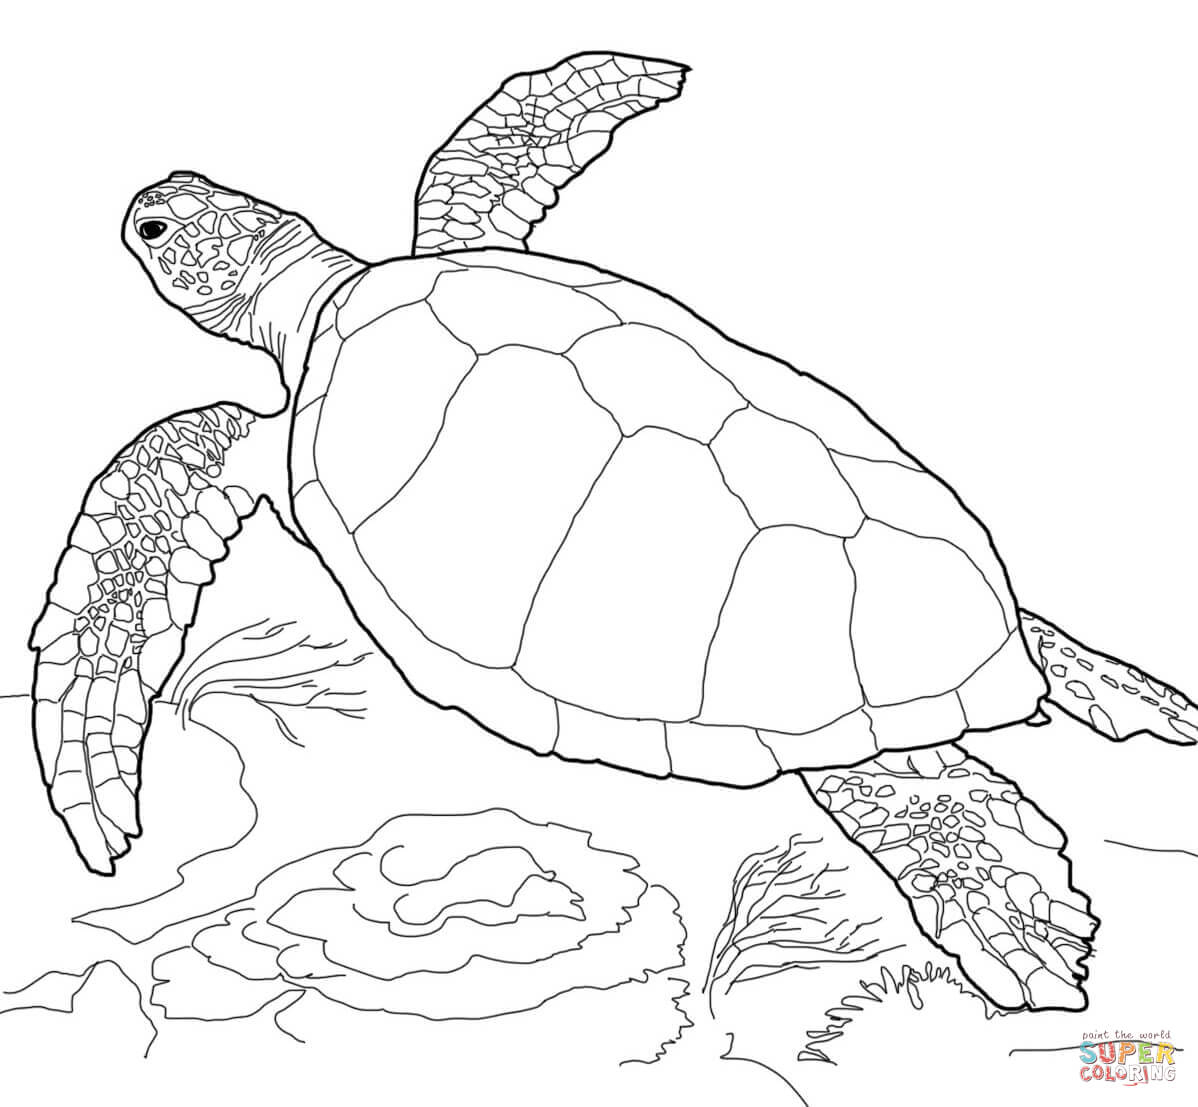 1198x1107 Simple Sea Turtle Drawing Simple Turtle Drawing How To Draw A Sea